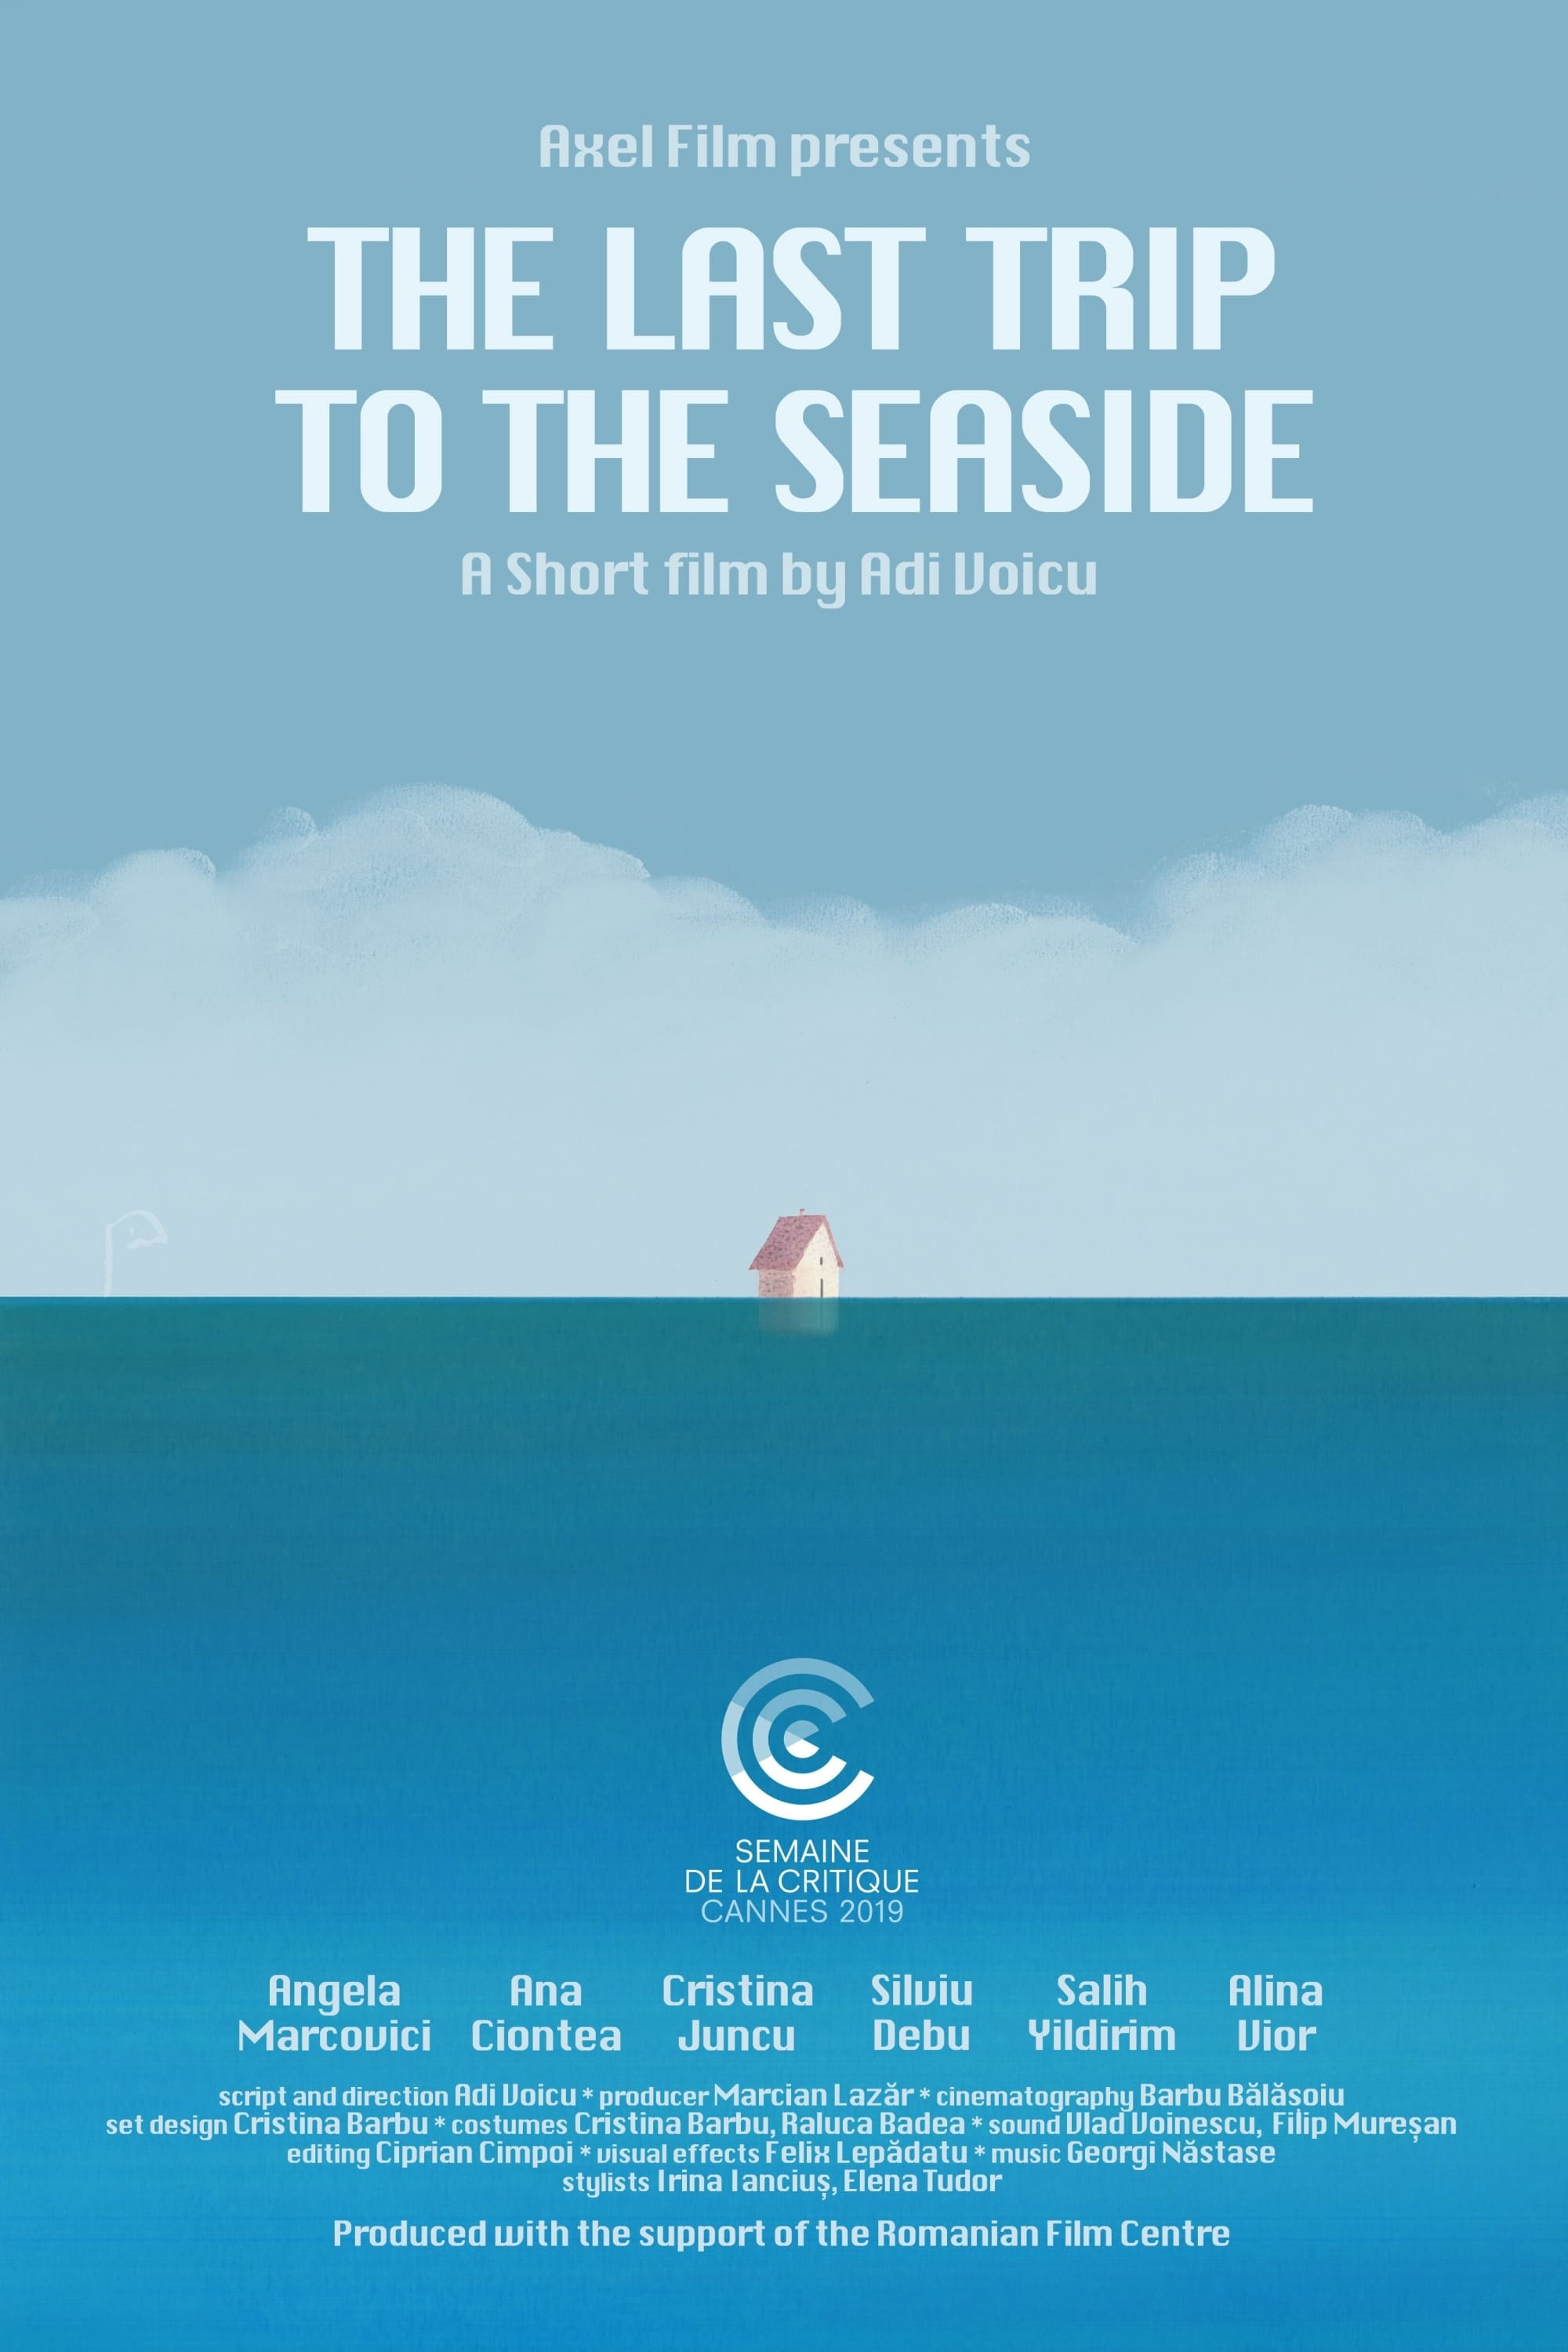 The Last Trip to the Seaside